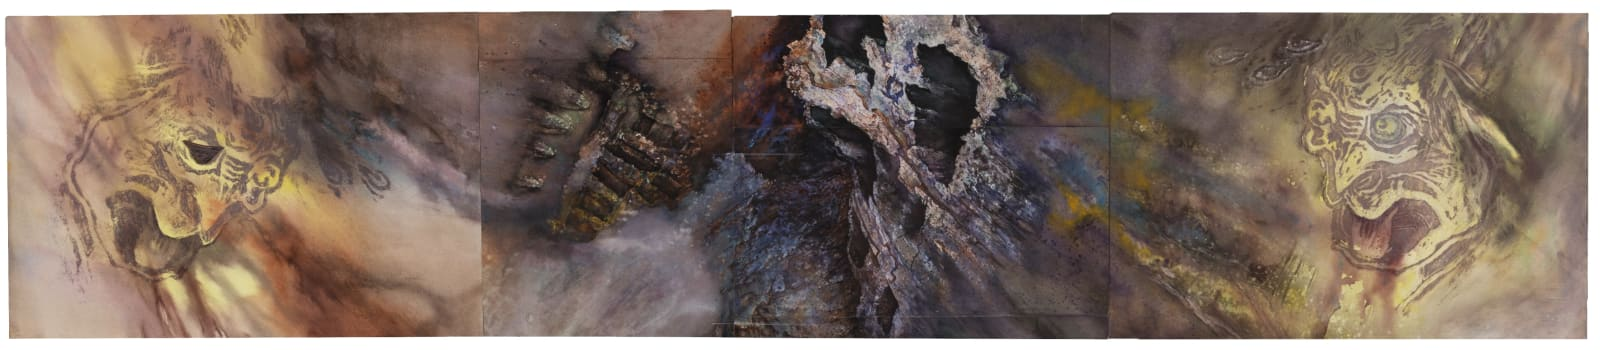 """Liminatus Noh, 2001-2021 Watercolor, oil, acrylic, woodcut, and offset print on pieced paper 14"""" x 67.5"""" (TM 38) $12,000"""